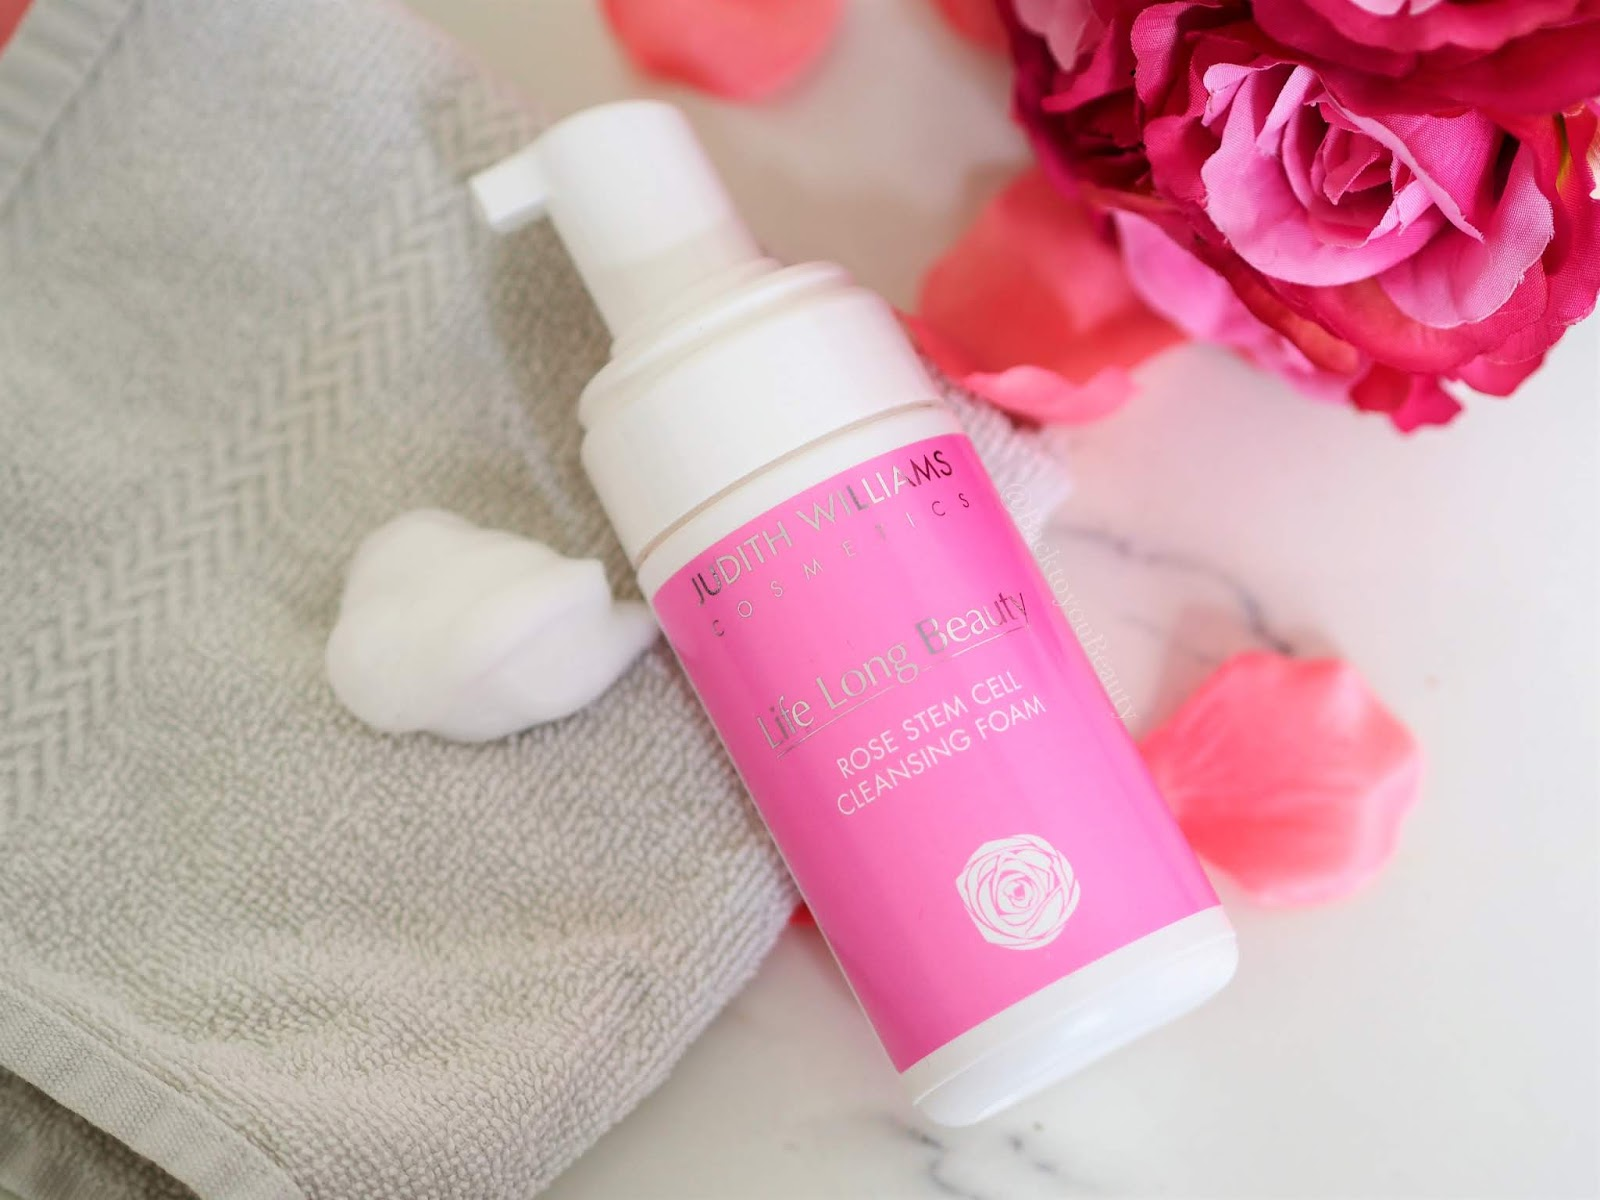 Rosa Centifolia foam face wash